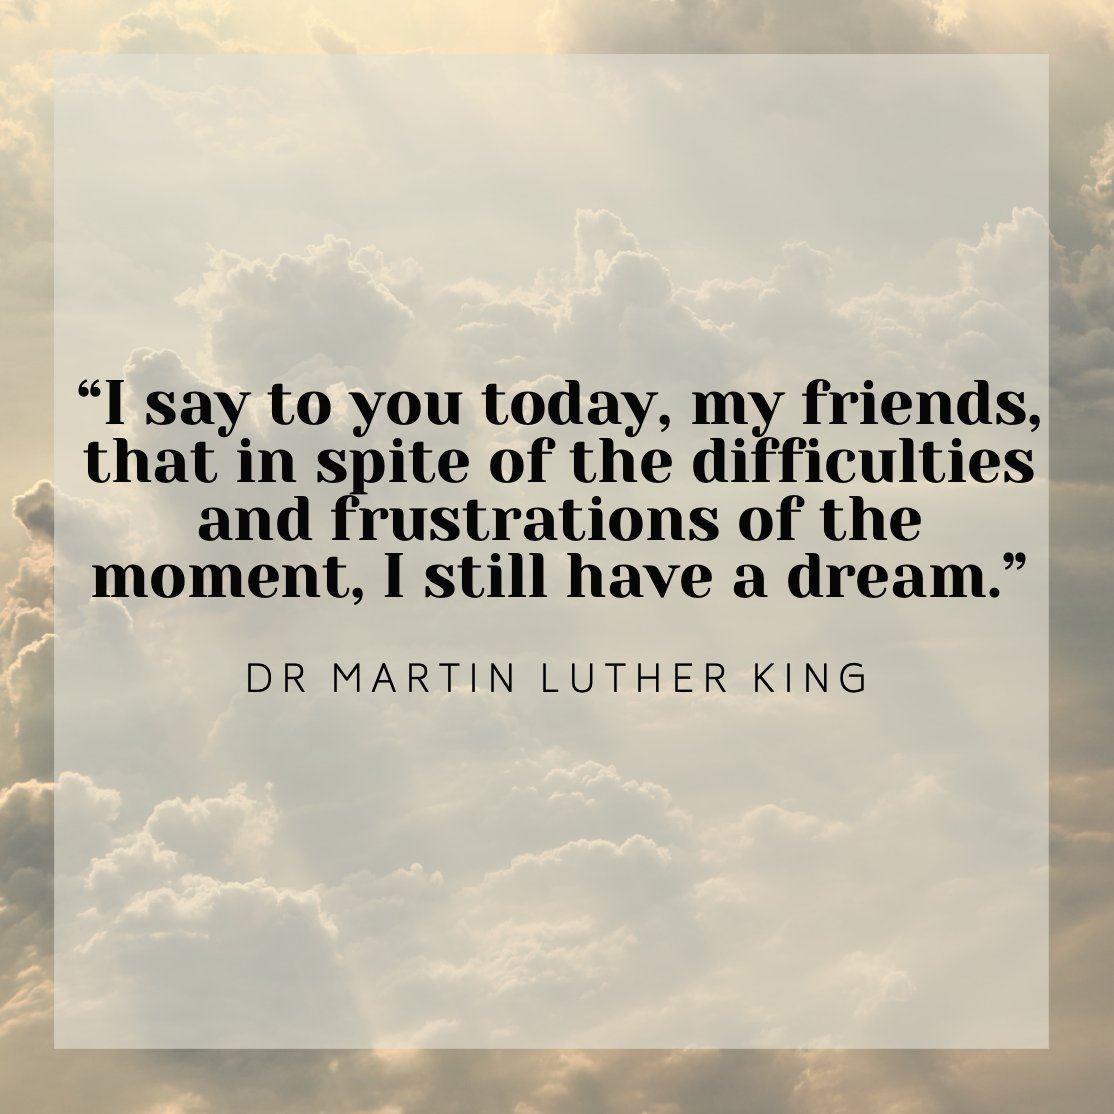 The brilliant Dr. Martin Luther King, Jr. Instead of wishing, which is passive, he dreamt, which is active.   Today we celebrate the life of a great leader and great visionary.  #leadership #MLKday #DrMartinLutherKingJr #dreams #quote